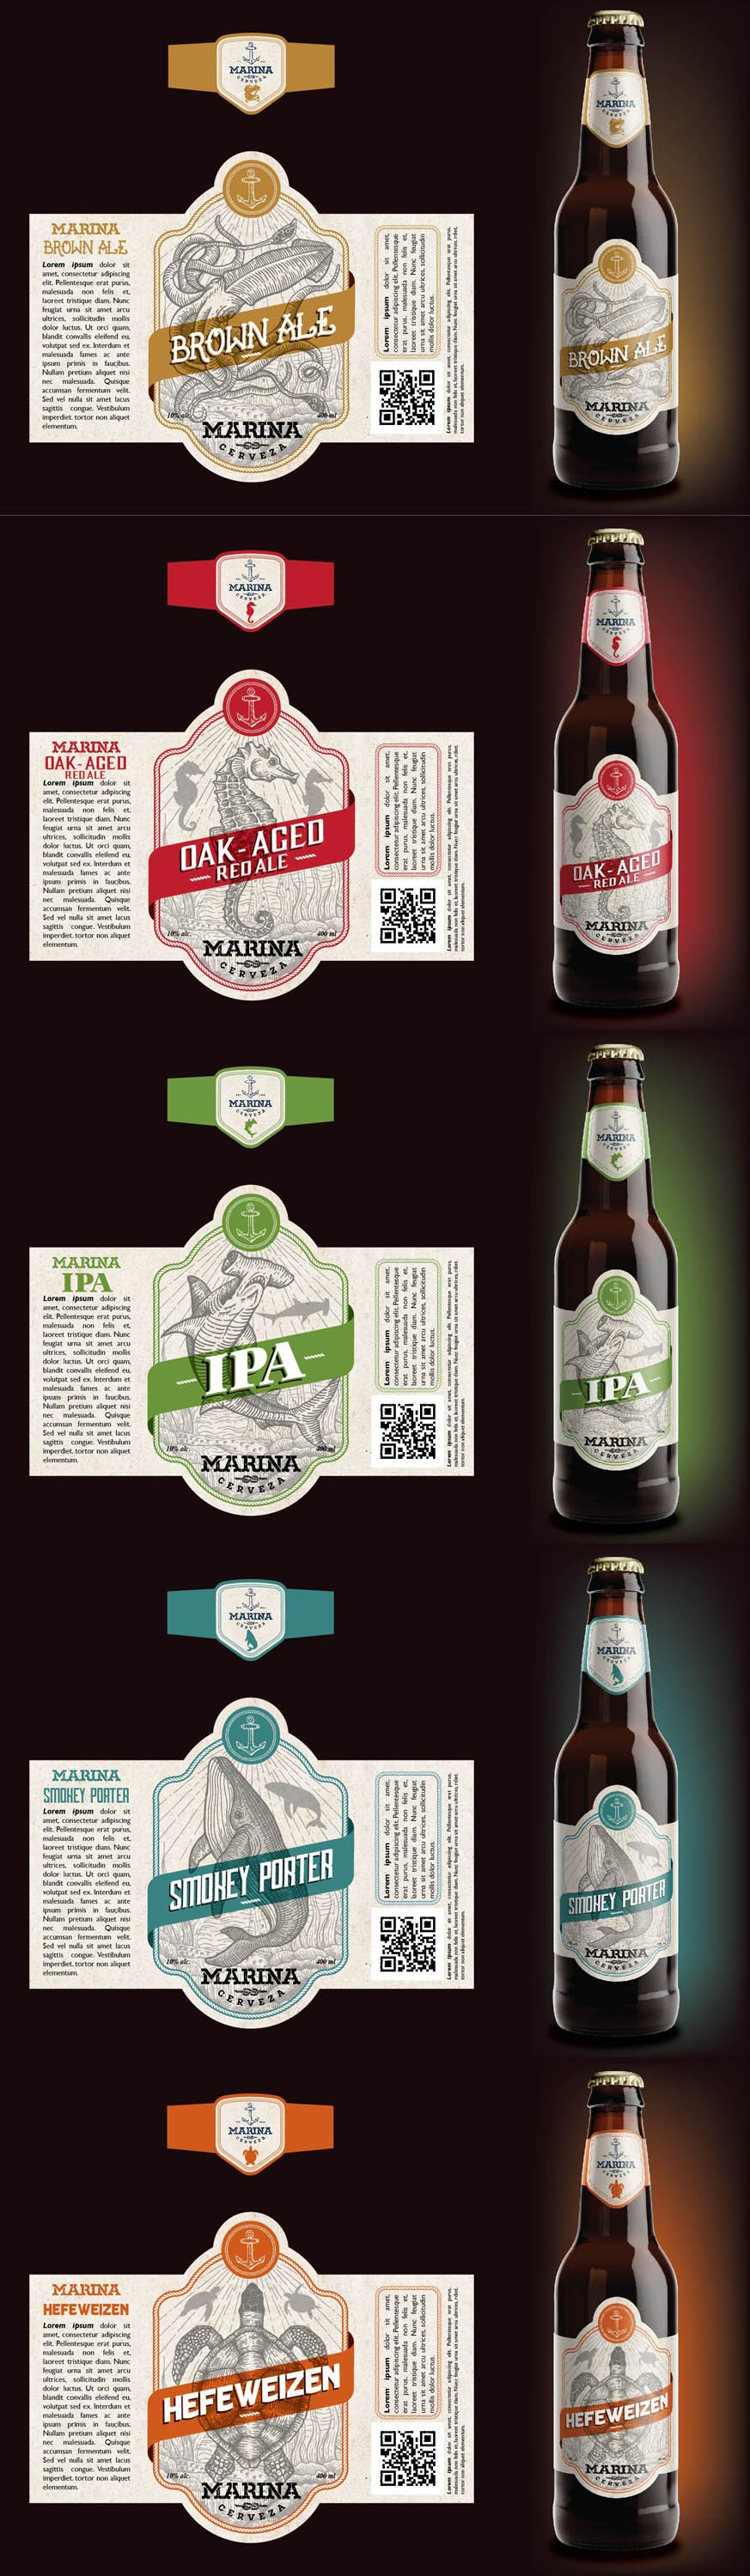 Create a vintage and timeless beer label for an up and coming mexican craft brewery!